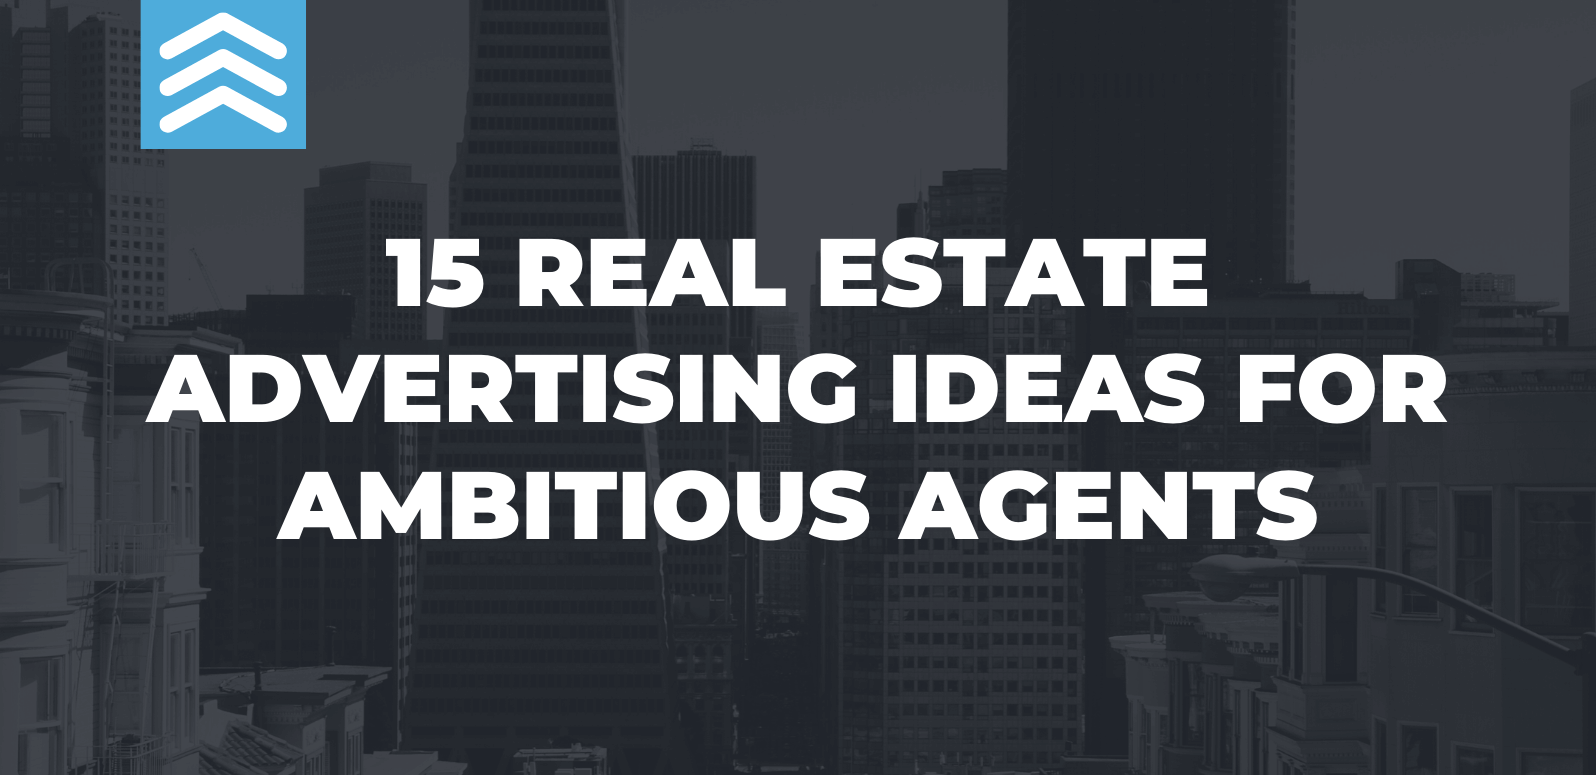 Real Estate Advertising 24 Ideas And Tactics To Attract Clients On Every Platform Follow Up Boss